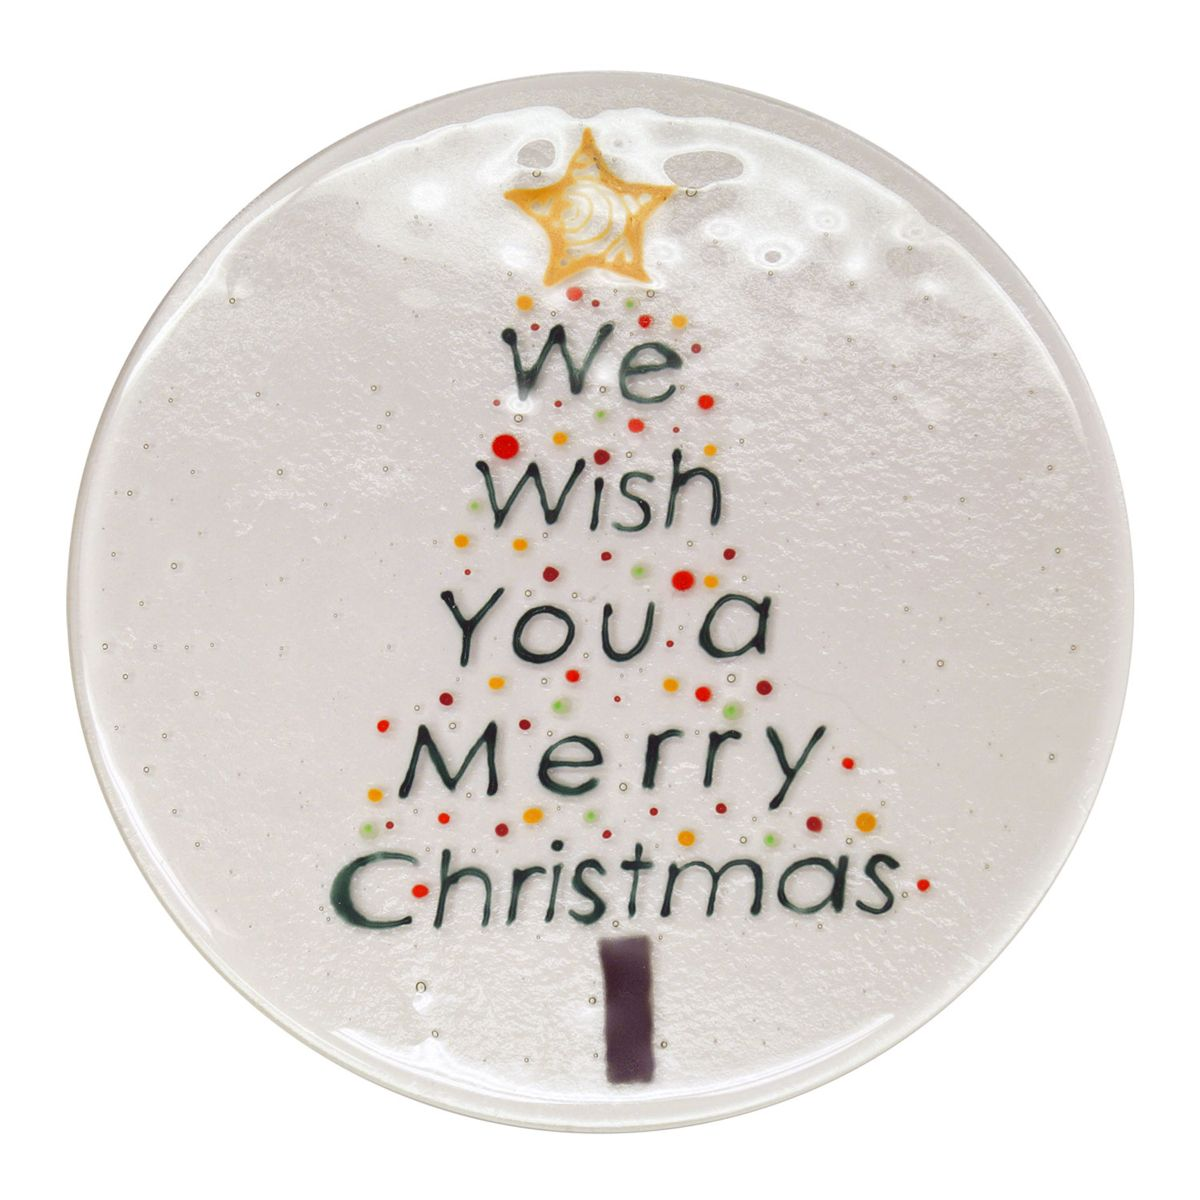 We Wish You a Merry Christmas Plate